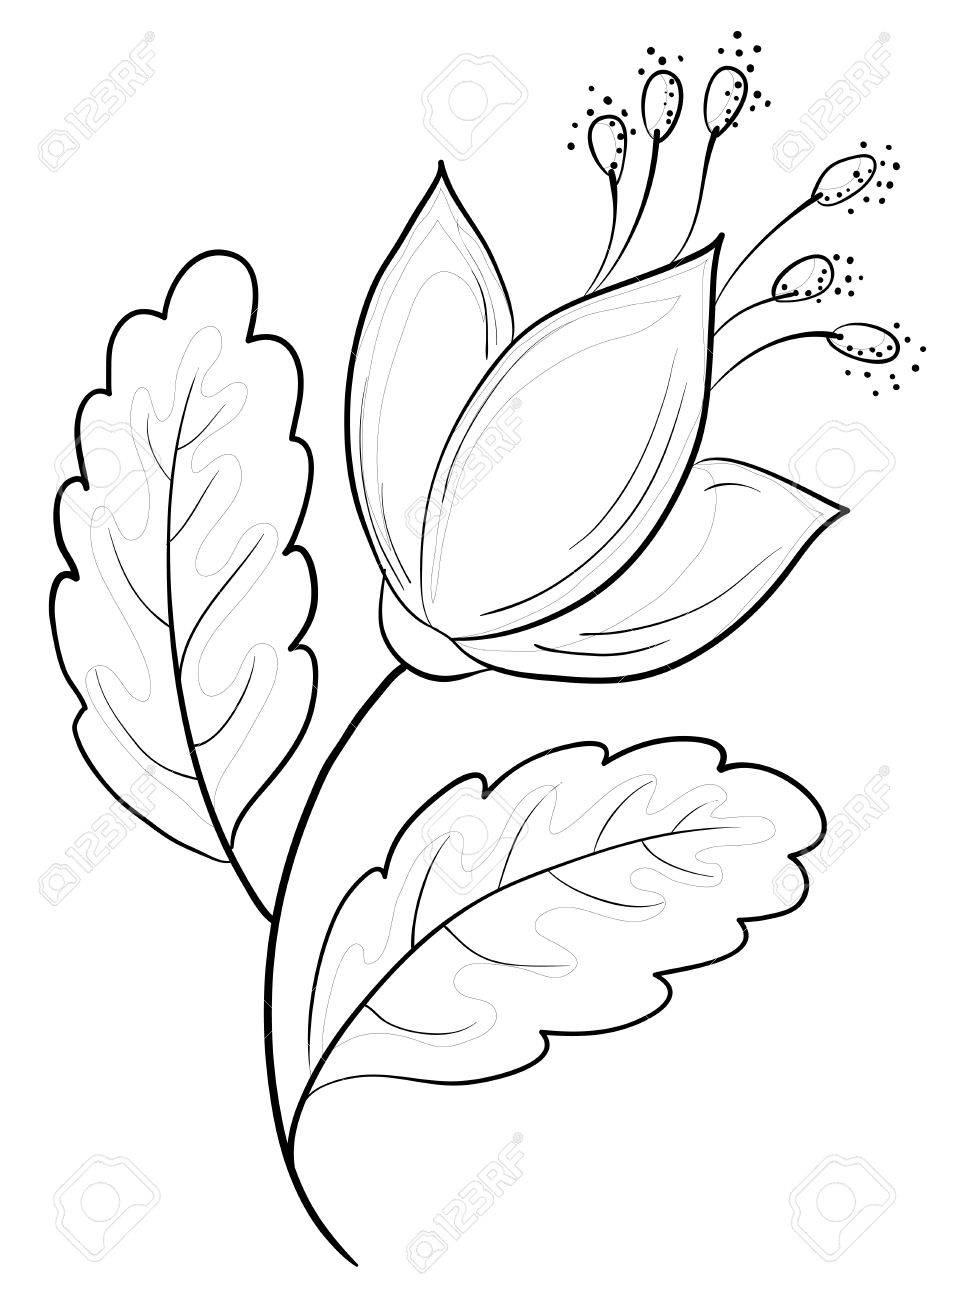 Abstract vector symbolical flower, monochrome contours, isolated Stock Vector - 9324441